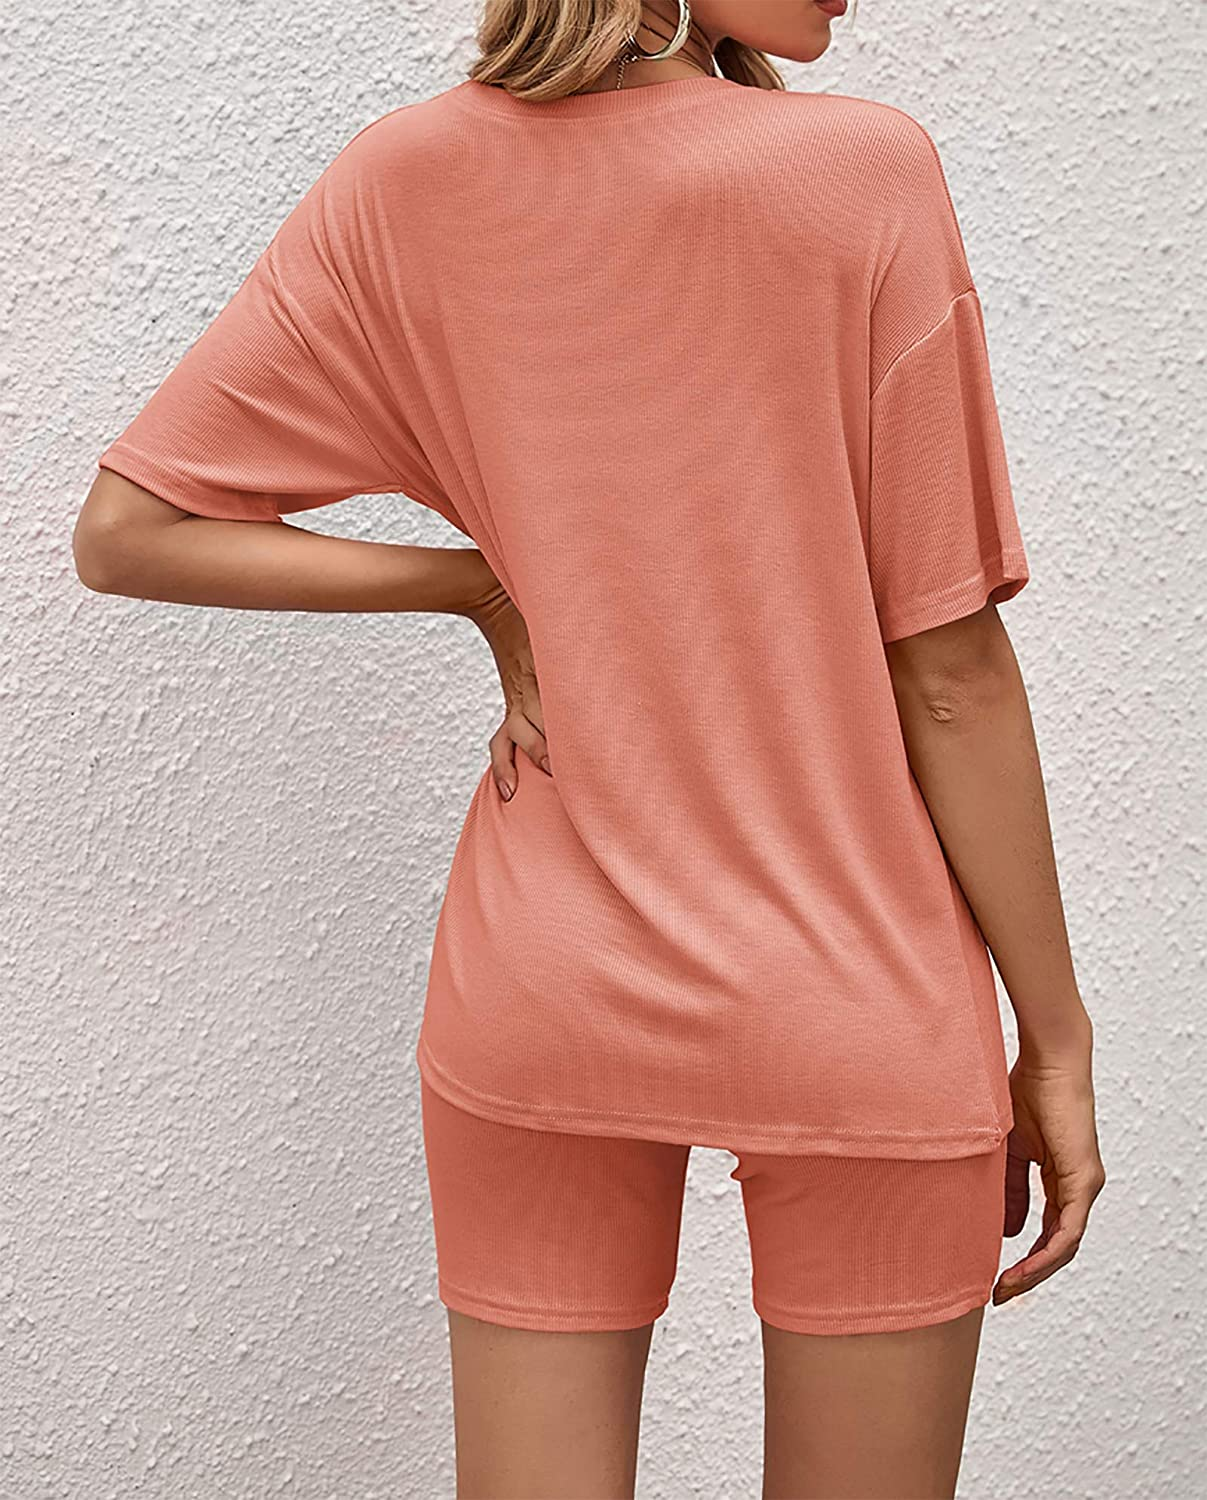 Jhsnjnr Womens Summer Outfits Casual Short Sleeve T Shirts Elastic Bodycon Shorts 2 Pieces